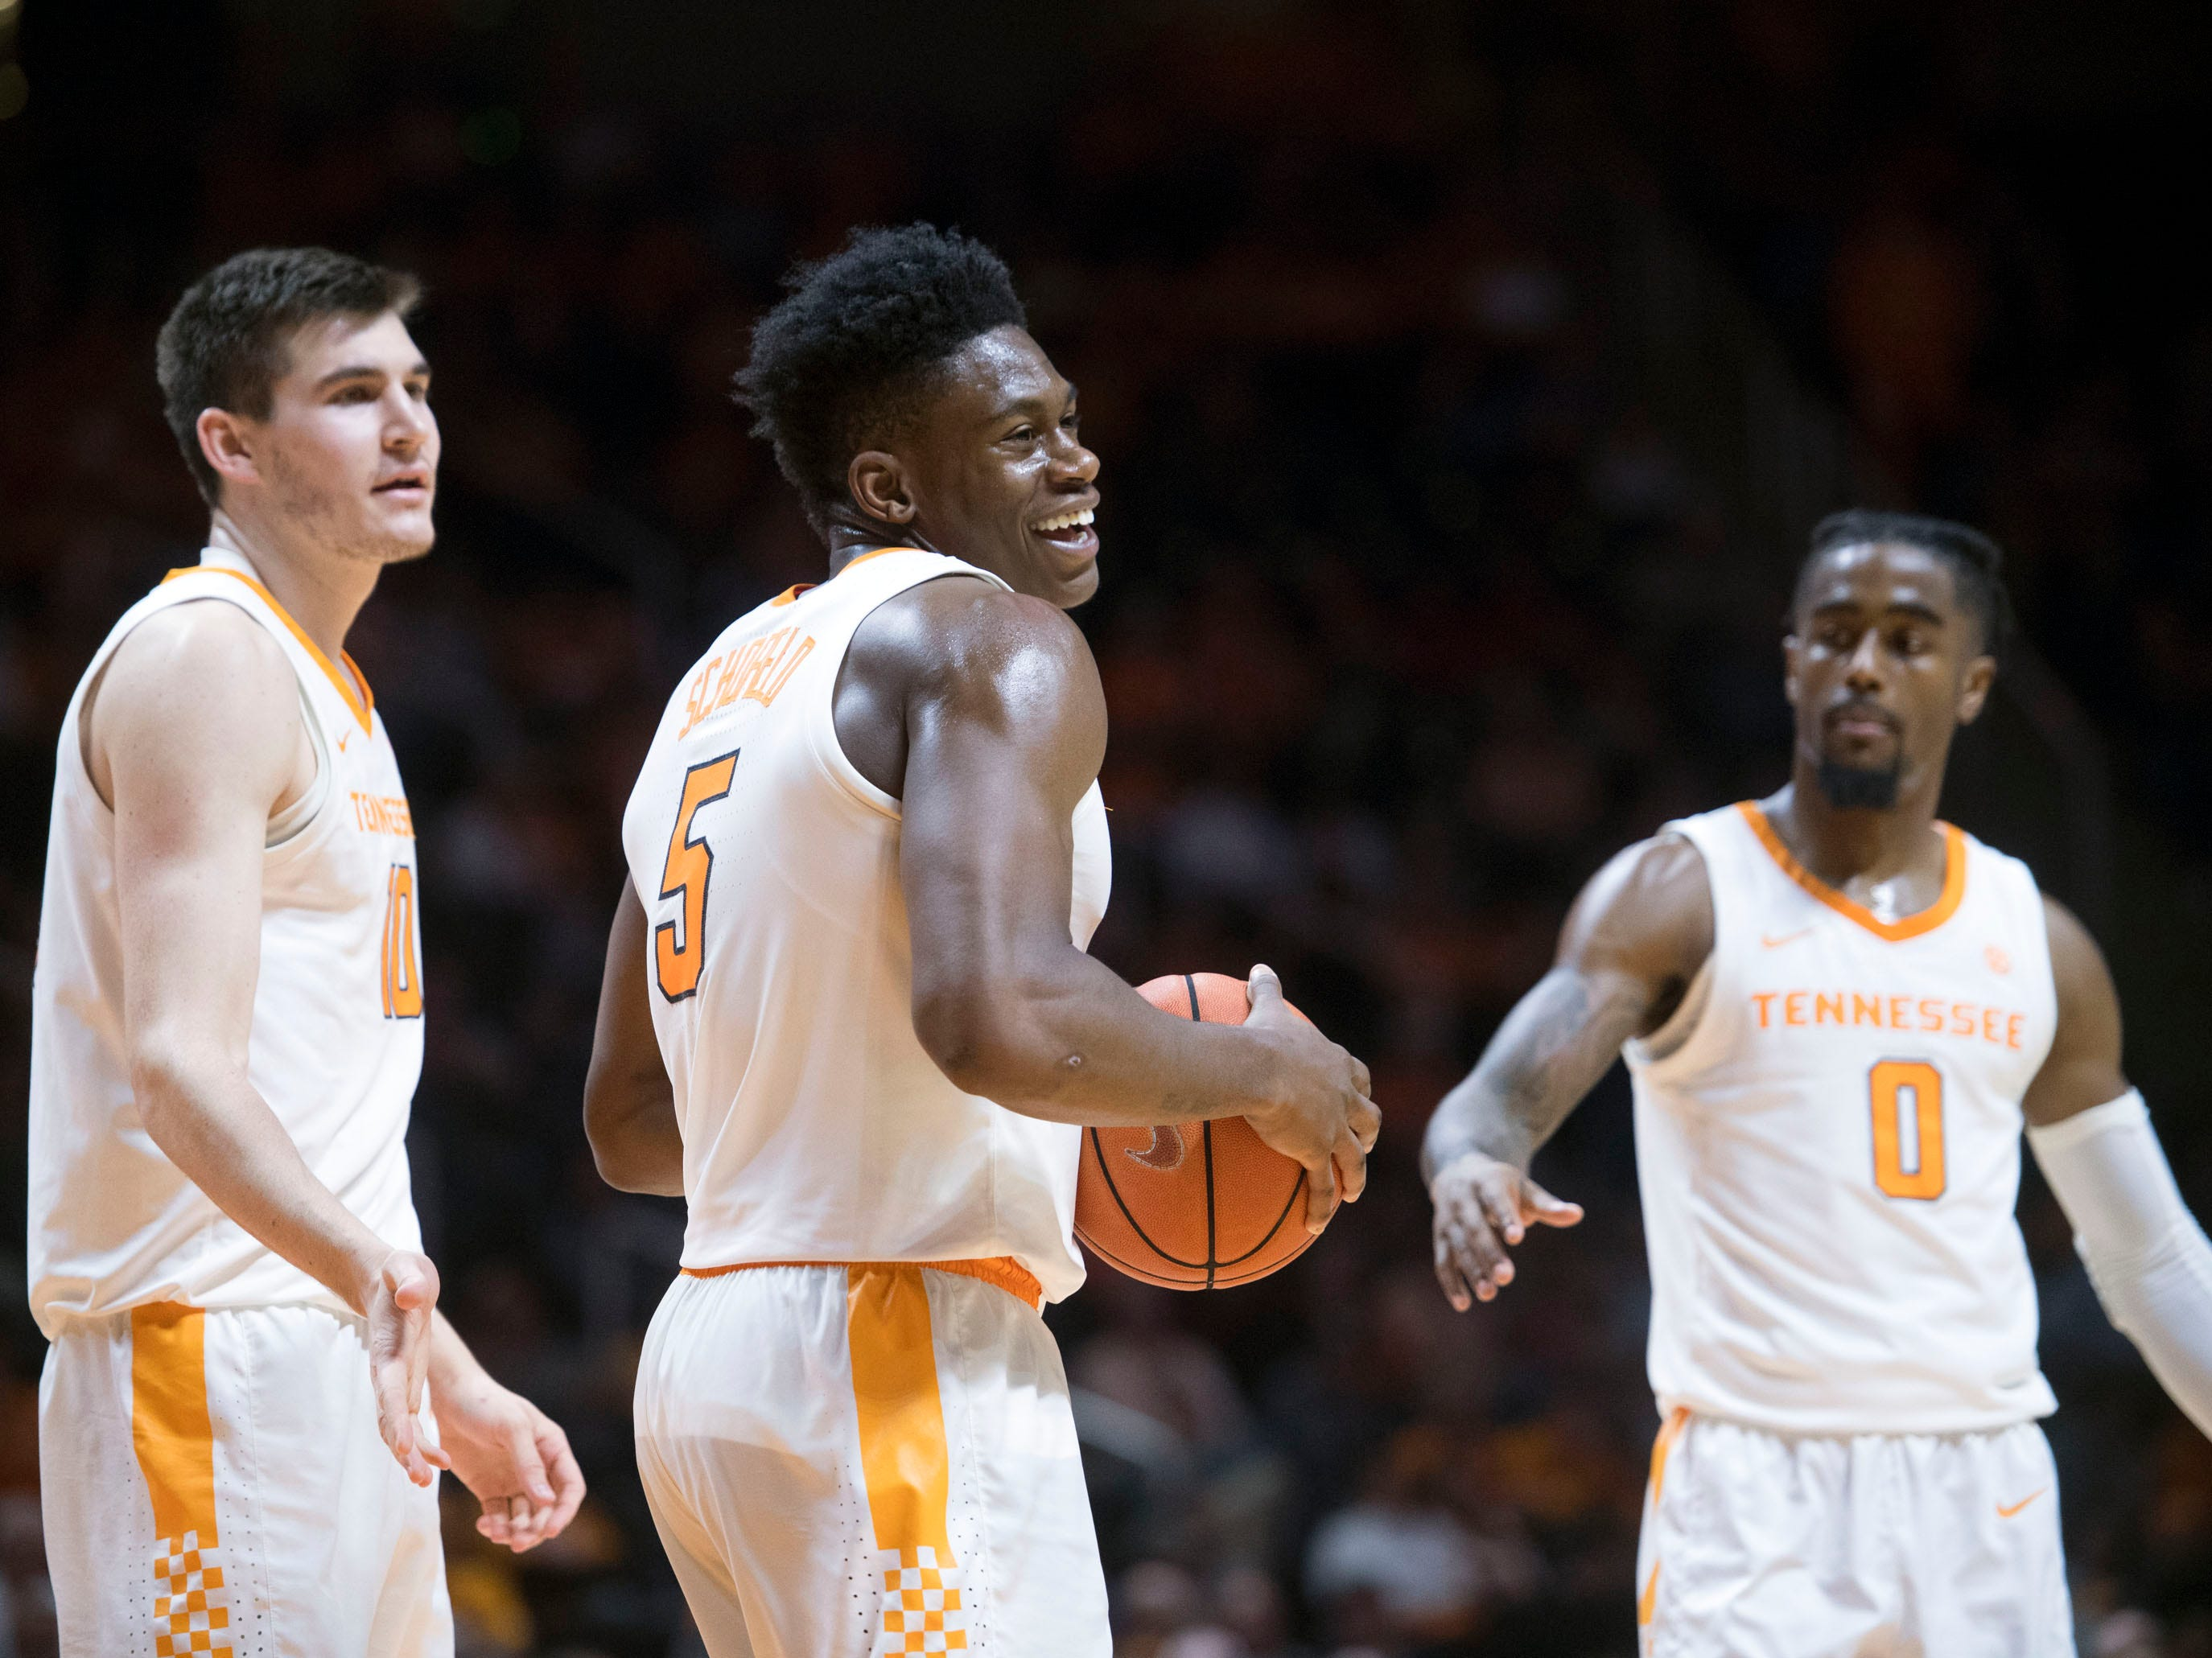 Tennessee's Admiral Schofield (5) laughs after he fouls a Georgia Tech player on Wednesday, November 14, 2018.